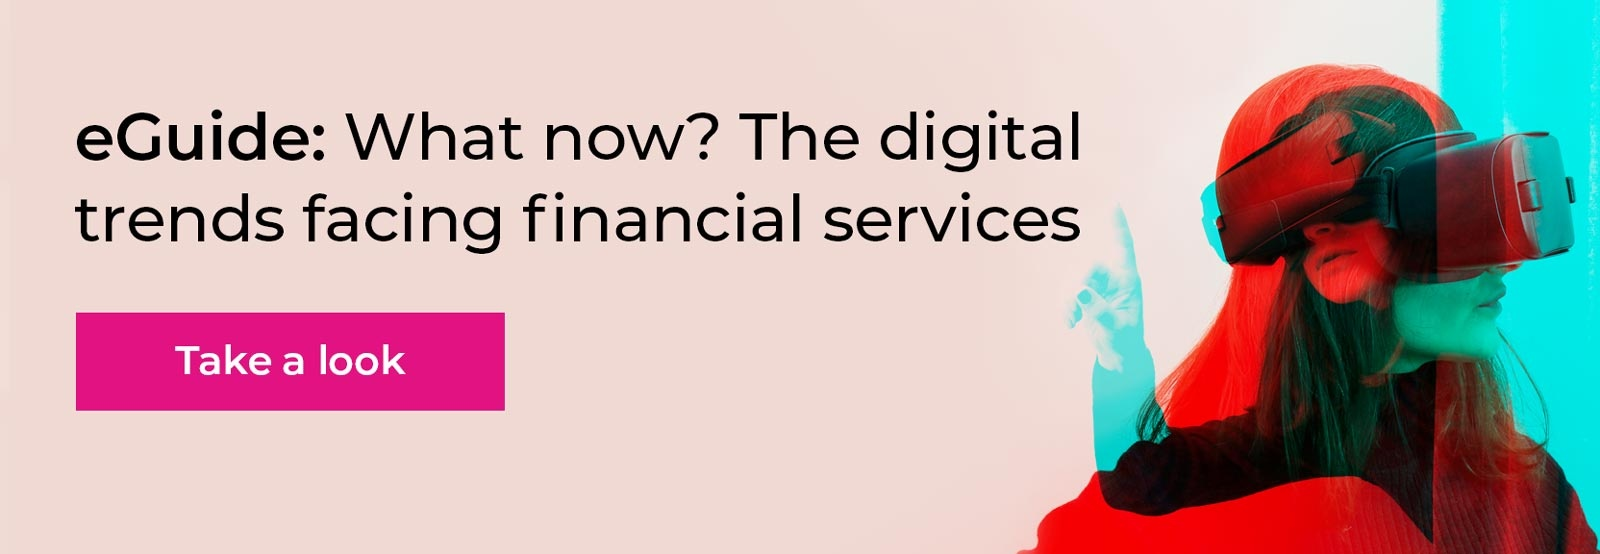 The digital trends facing financial services